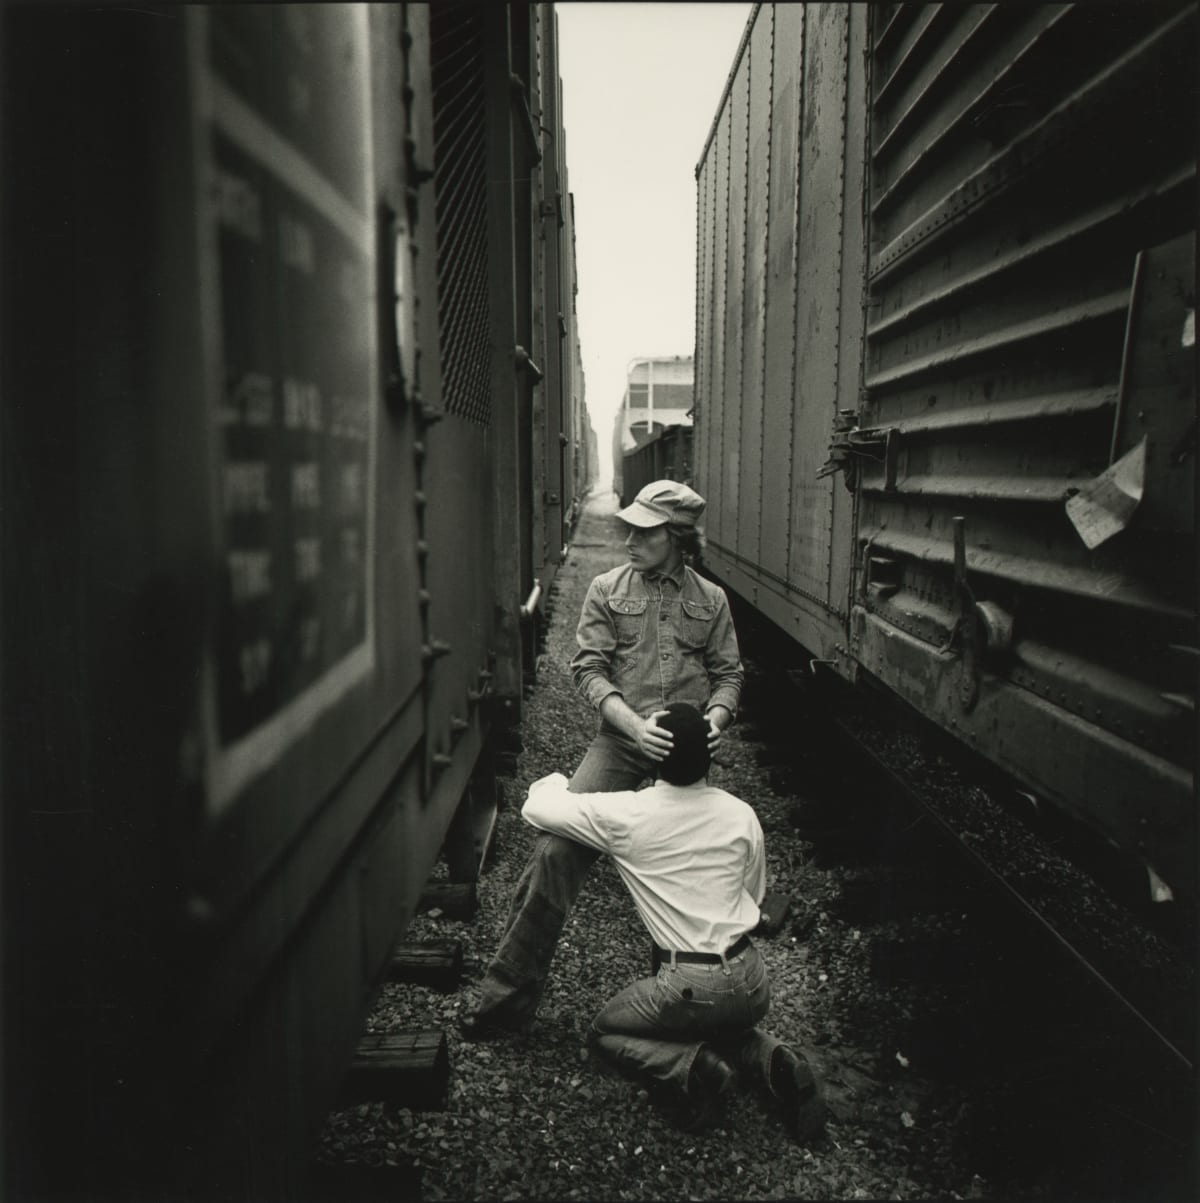 Arthur Tress, Riding the Rails, 1976